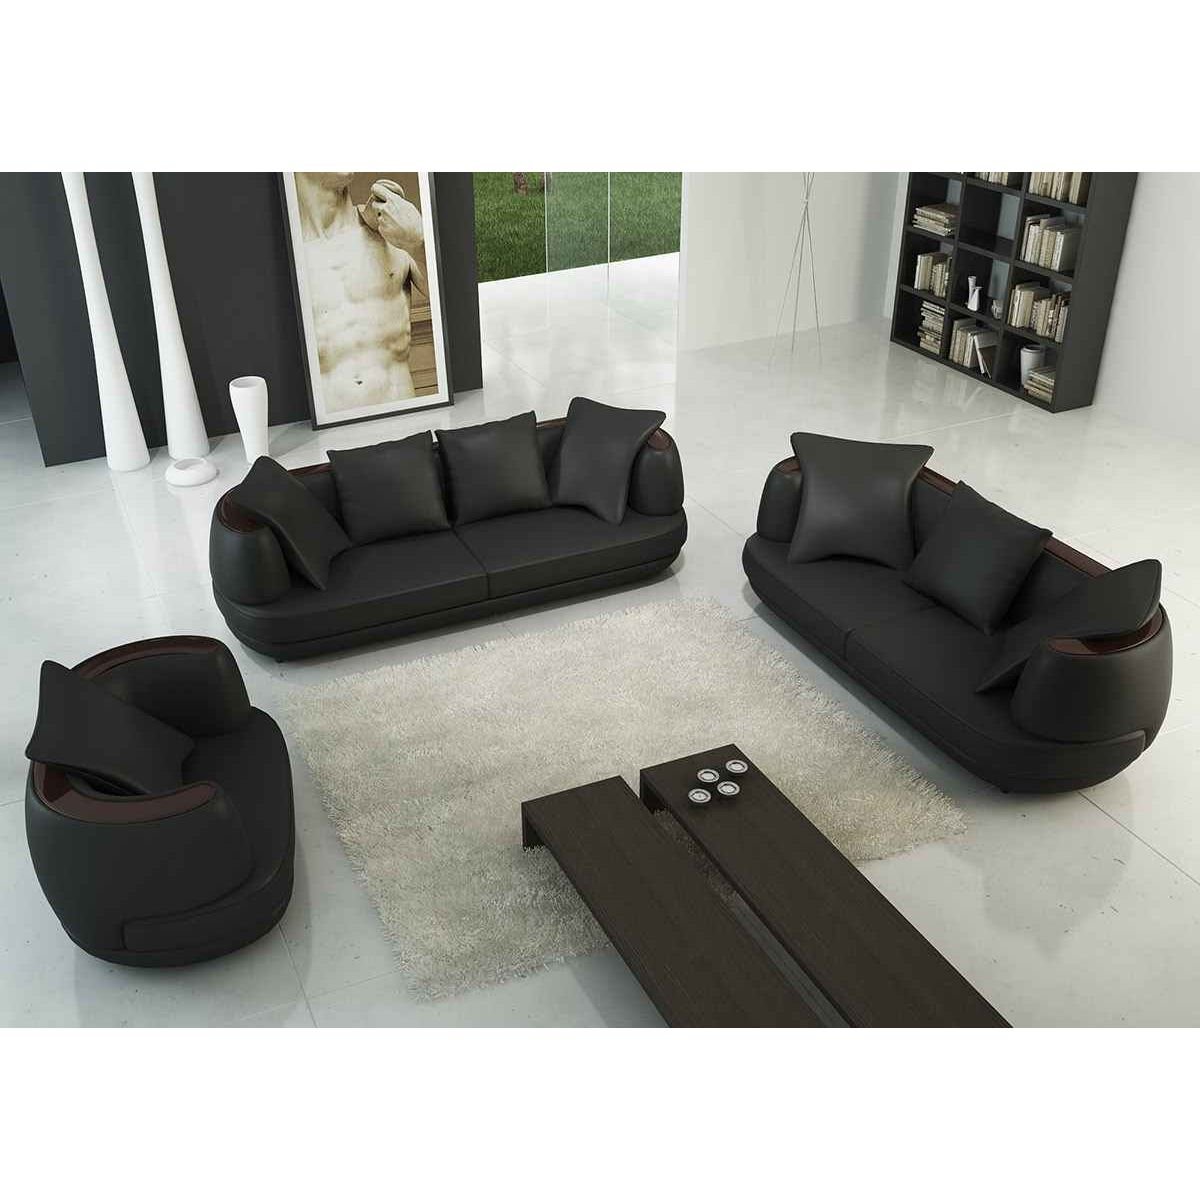 Deco in paris ensemble canape 3 2 1 places noir en cuir ryga ryga 3 2 1 noir - Ensemble canape 3 2 1 ...